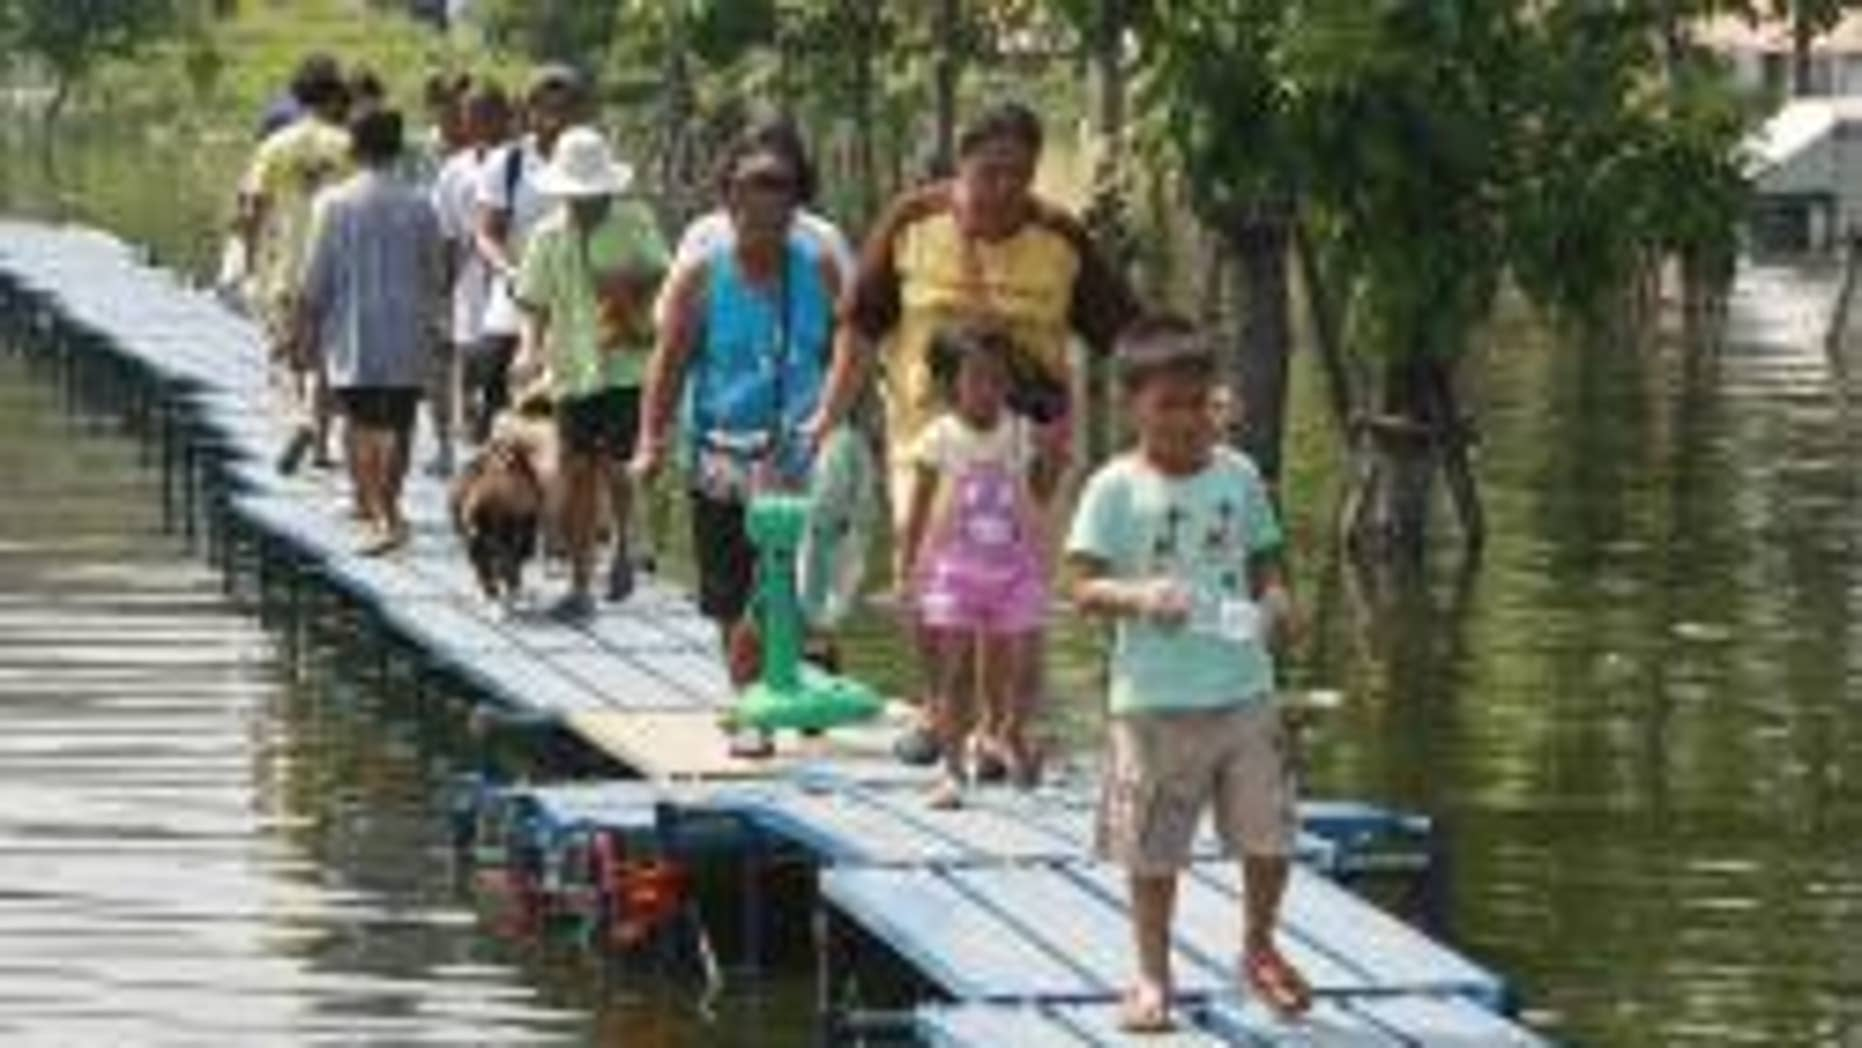 Oct. 2011: The Asian region has been ravaged by some of the worst flooding in decades, but drownings are a huge unreported epidemic.